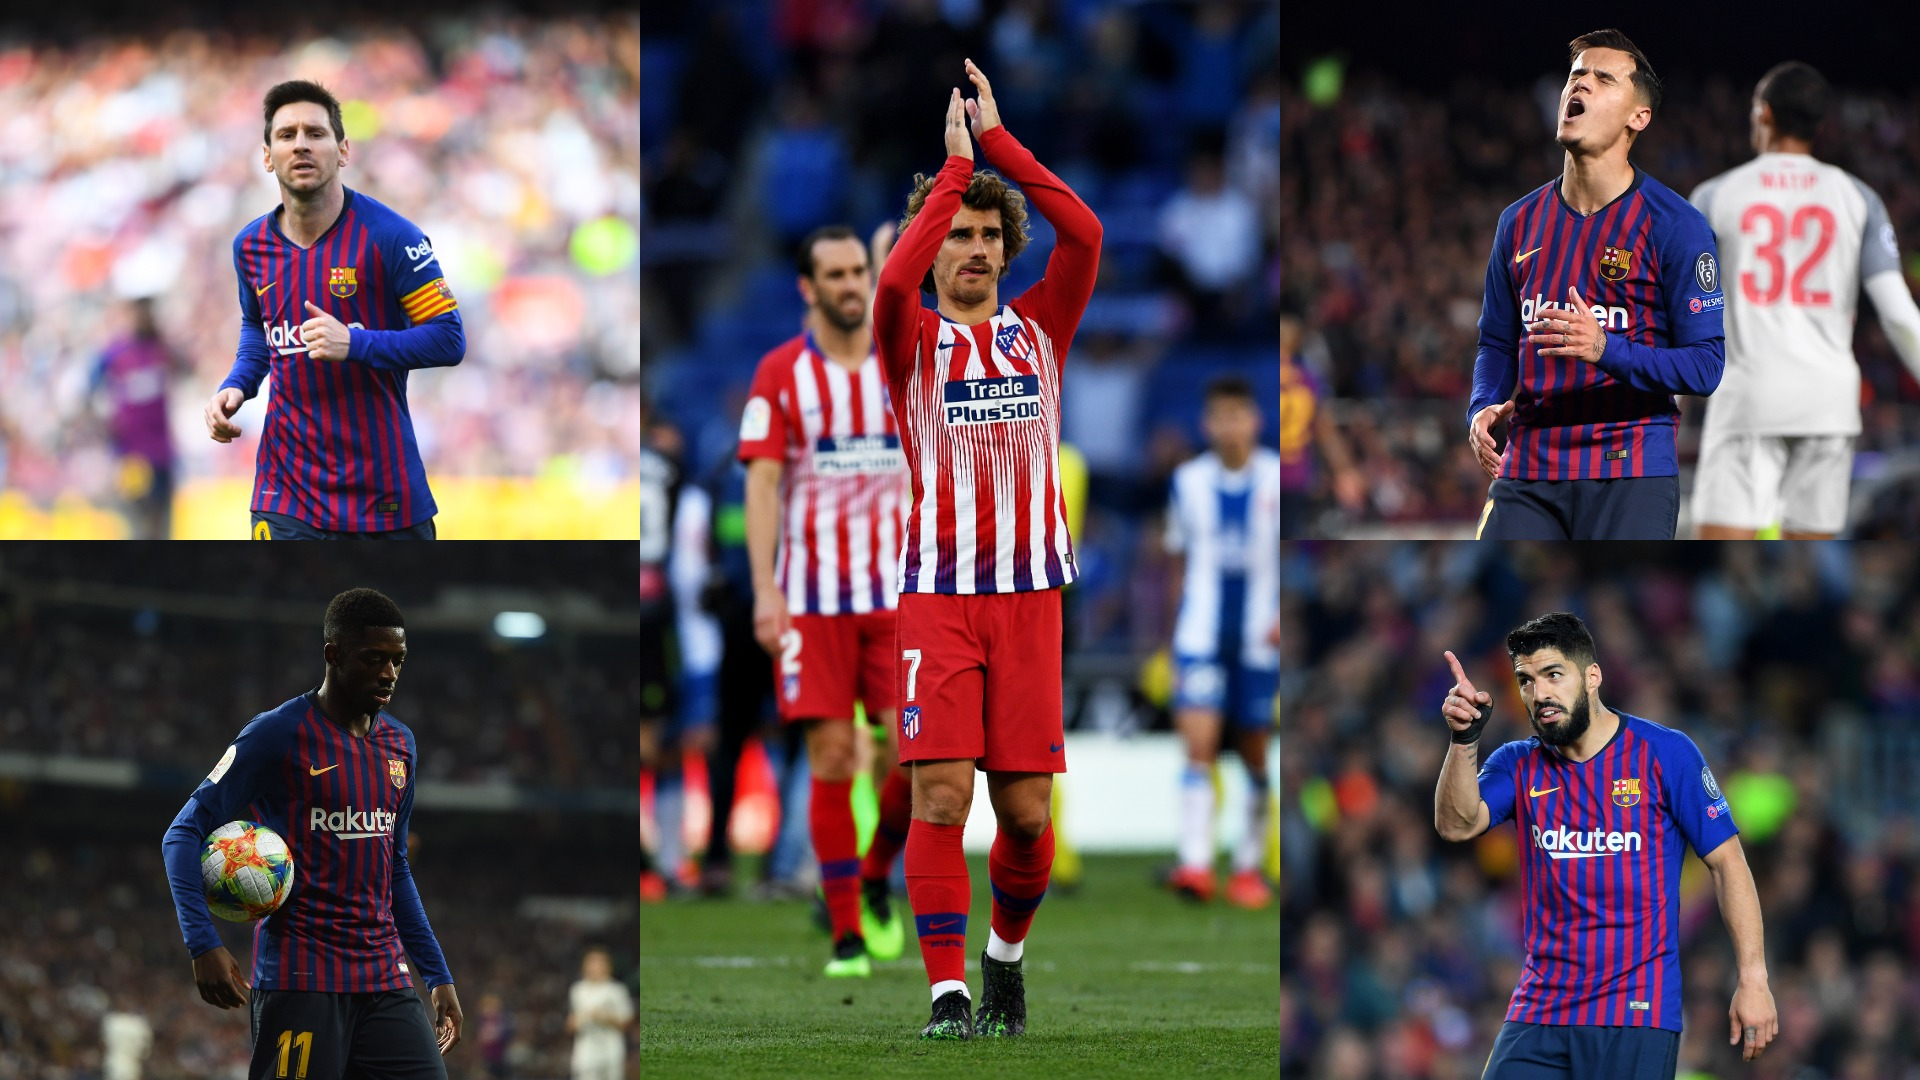 No space for Coutinho, an end to Suarez rift? - What would Griezmann's signing mean for Barcelona's forwards?